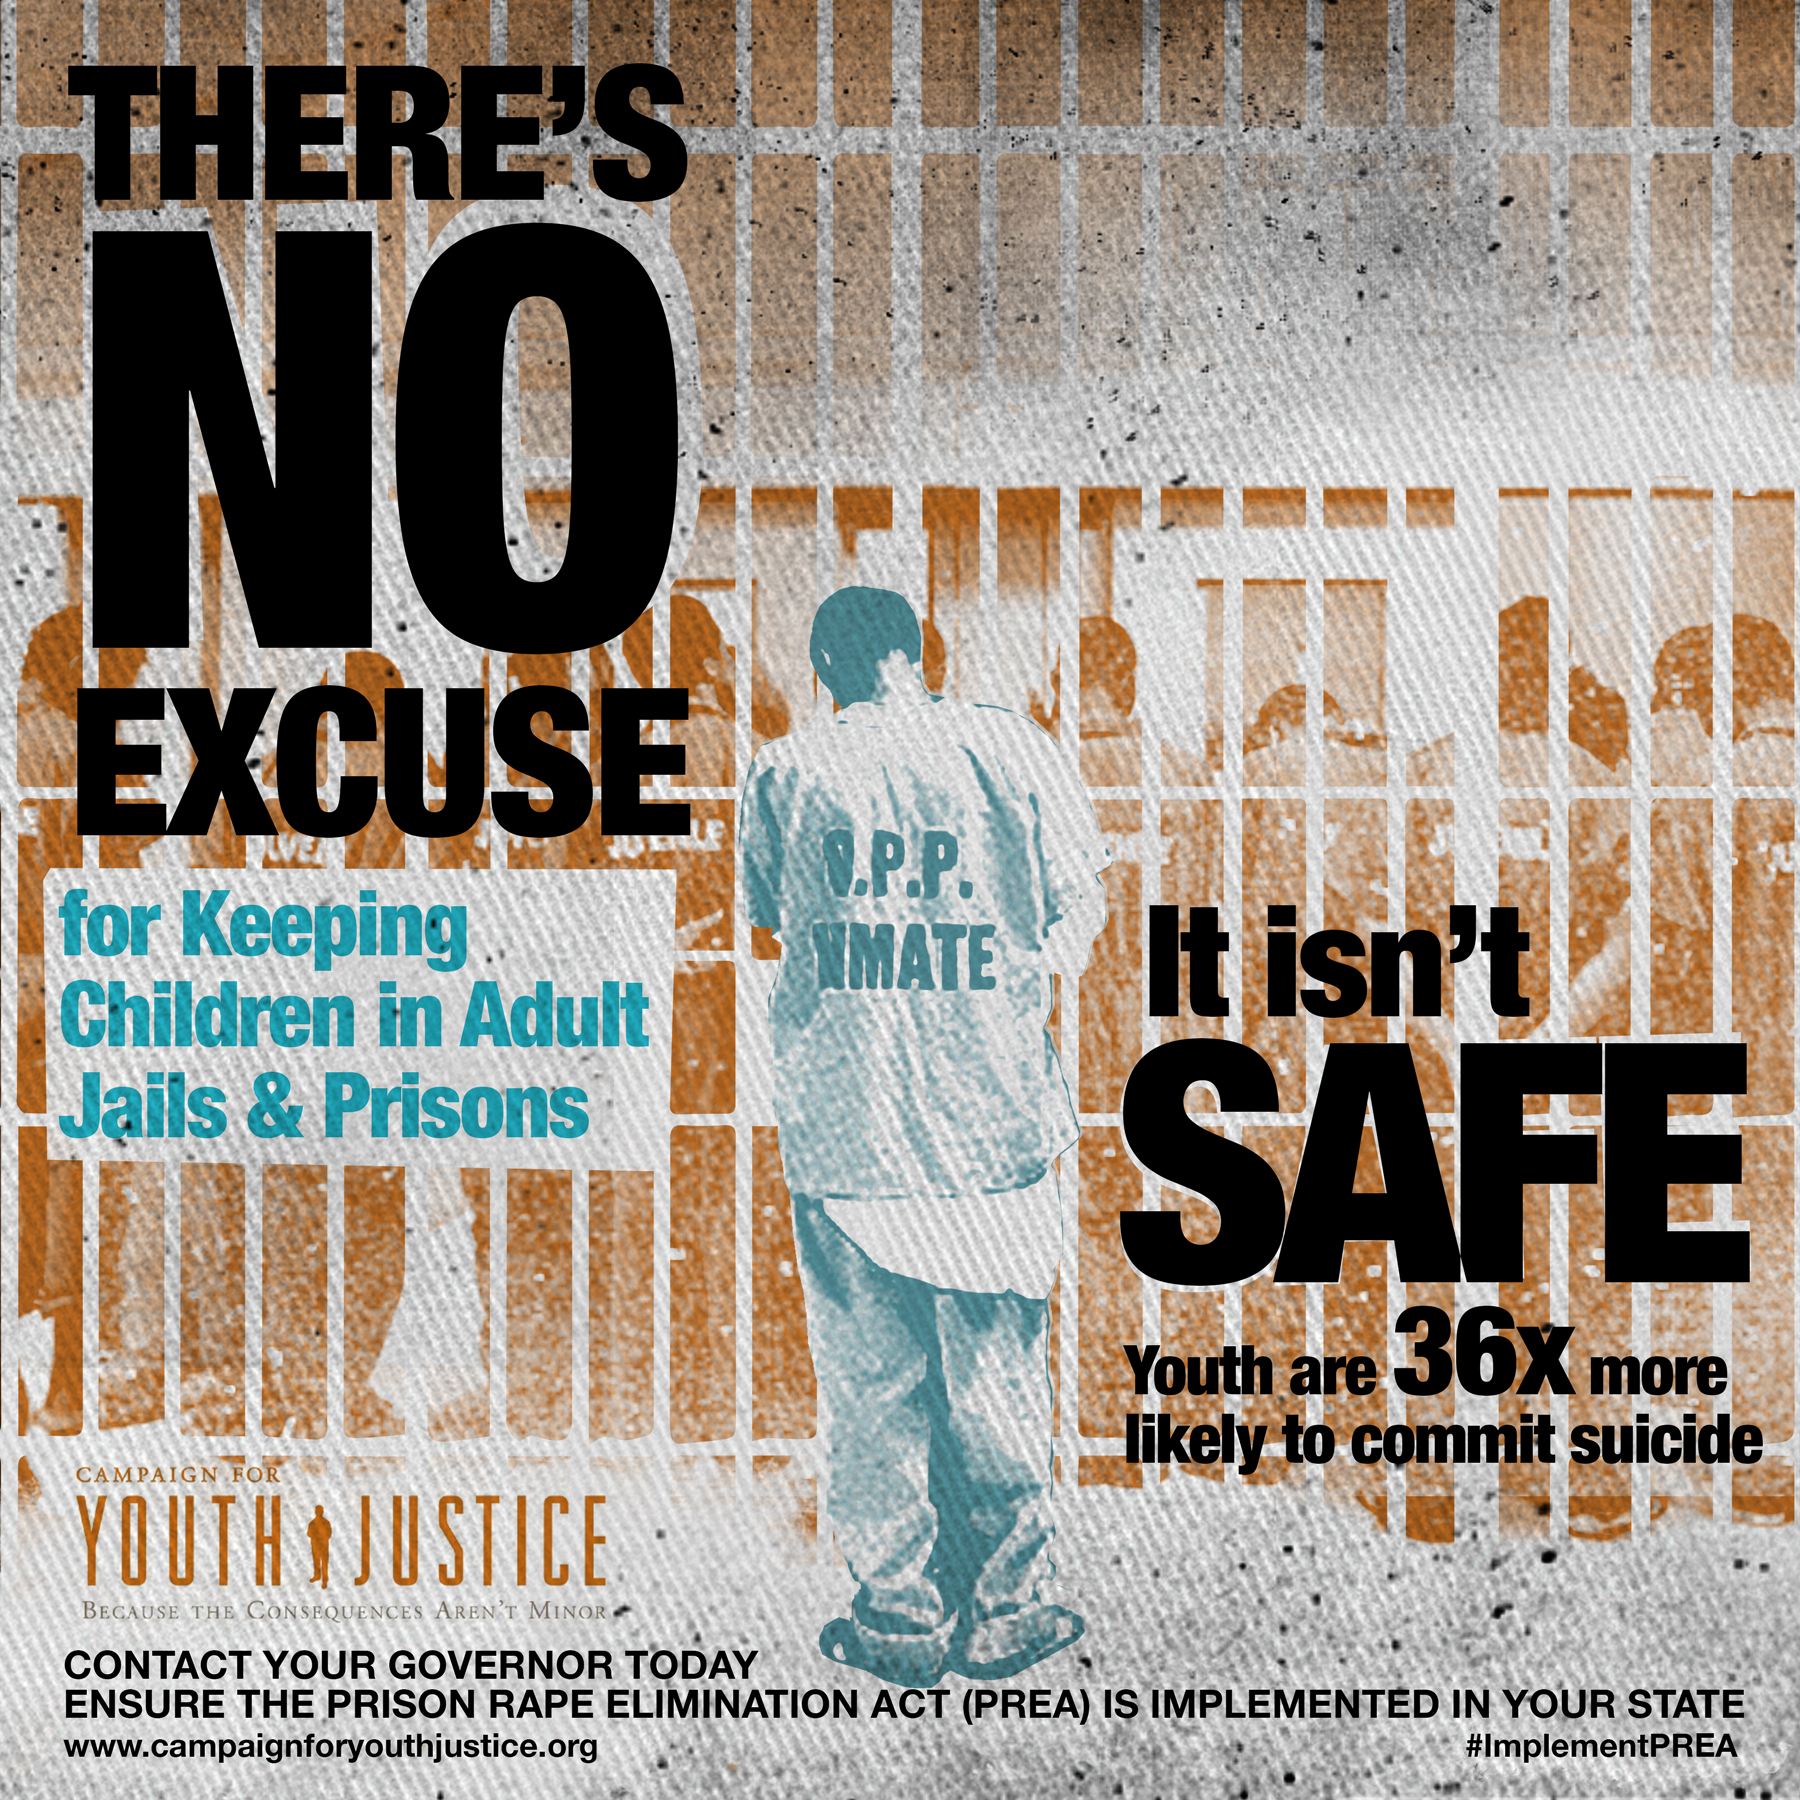 eliminating prison rape The prison rape elimination act (prea) is a federal law that supports the elimination, reduction, and prevention of sexual abuse in adult and juvenile facilities as well as community correction programs.